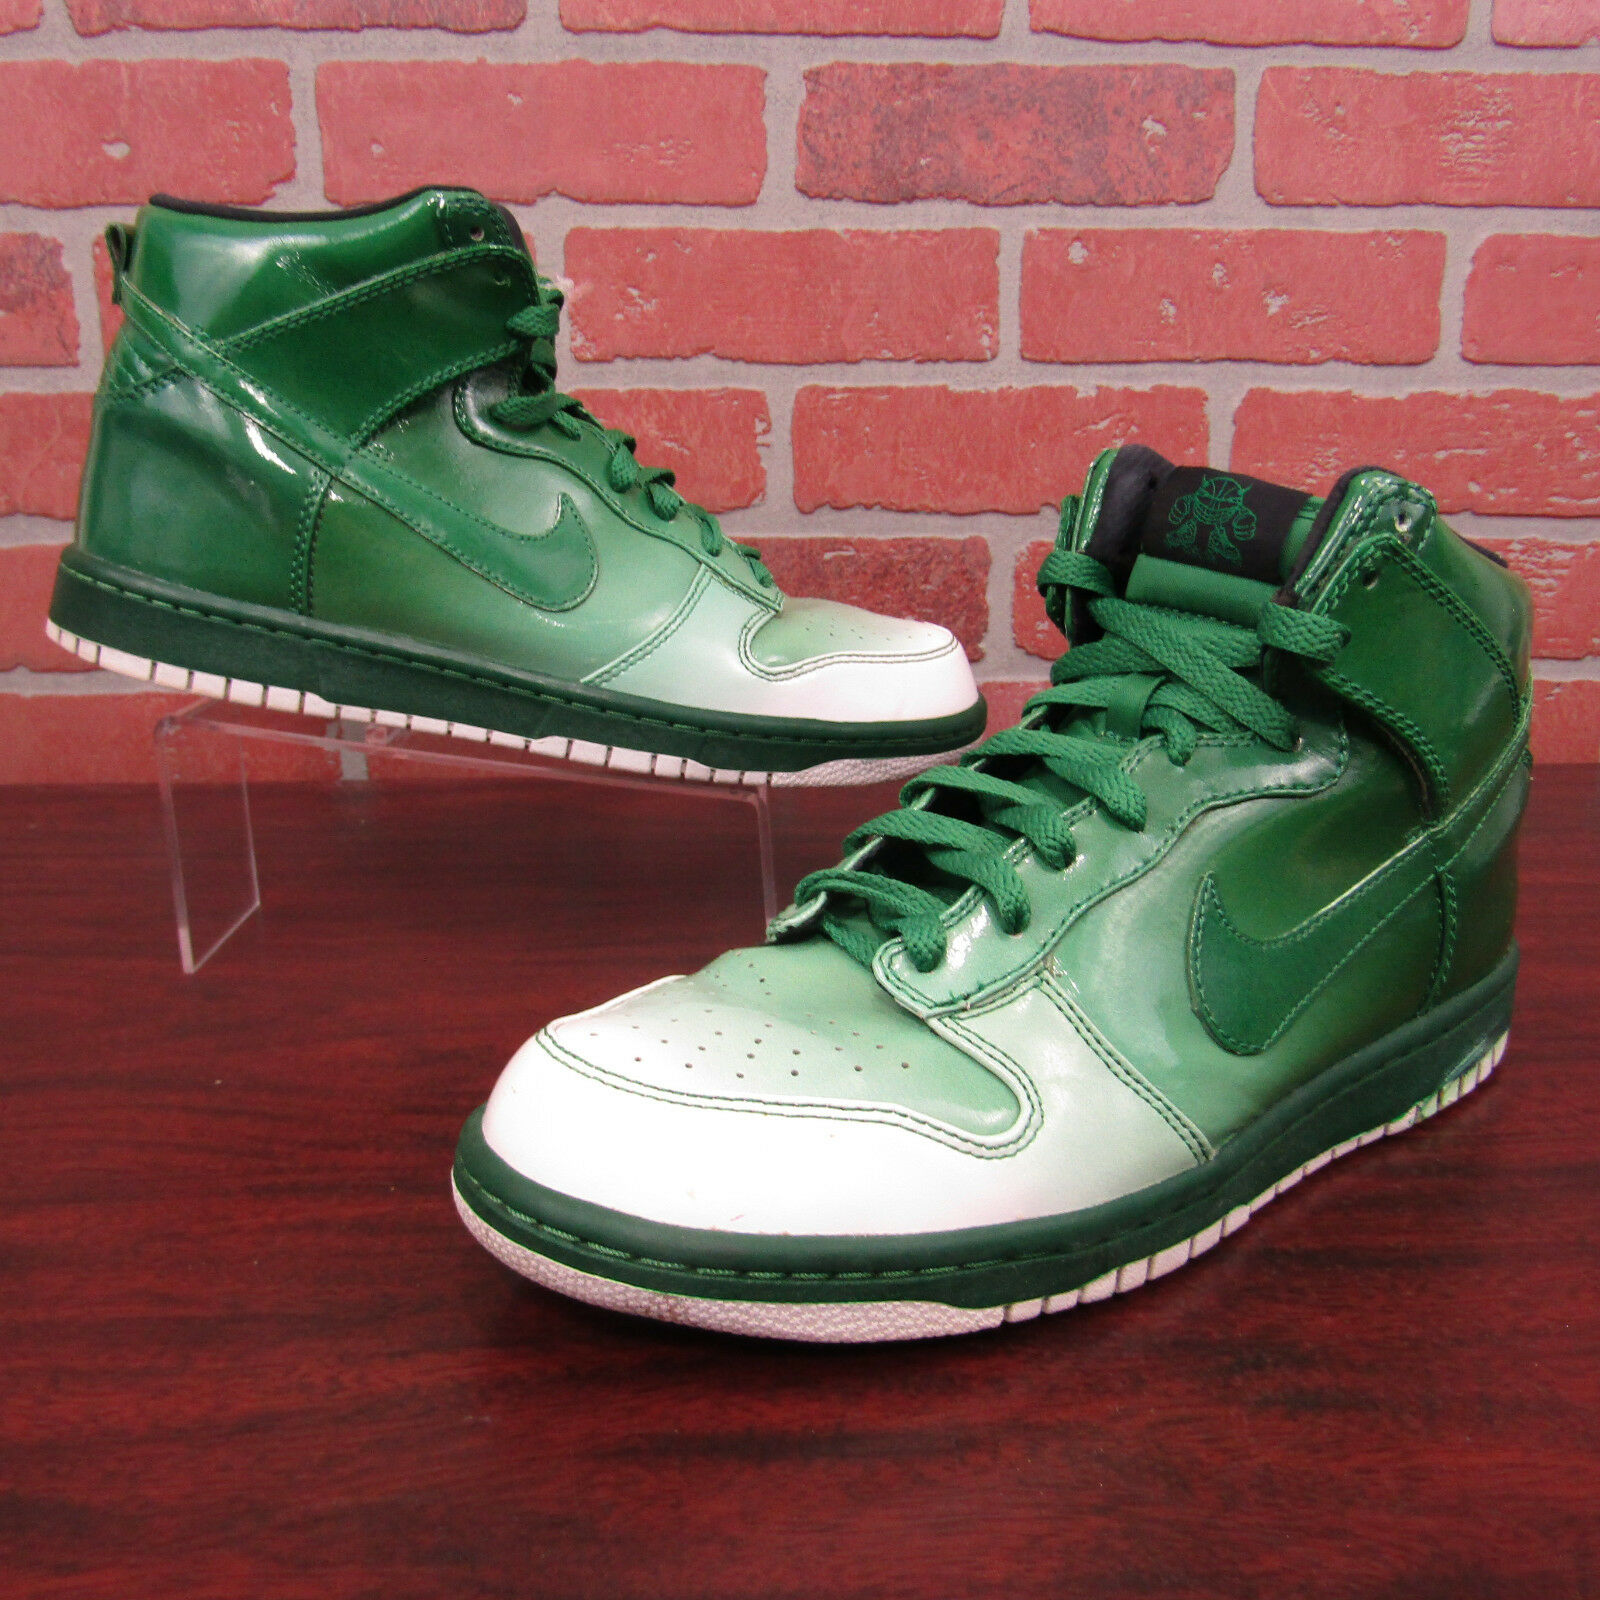 Great discount Nike Dunk Hi Supreme Spark Destroyers Mens Shoes Sz 9.5 Green 349710-131 S02G2